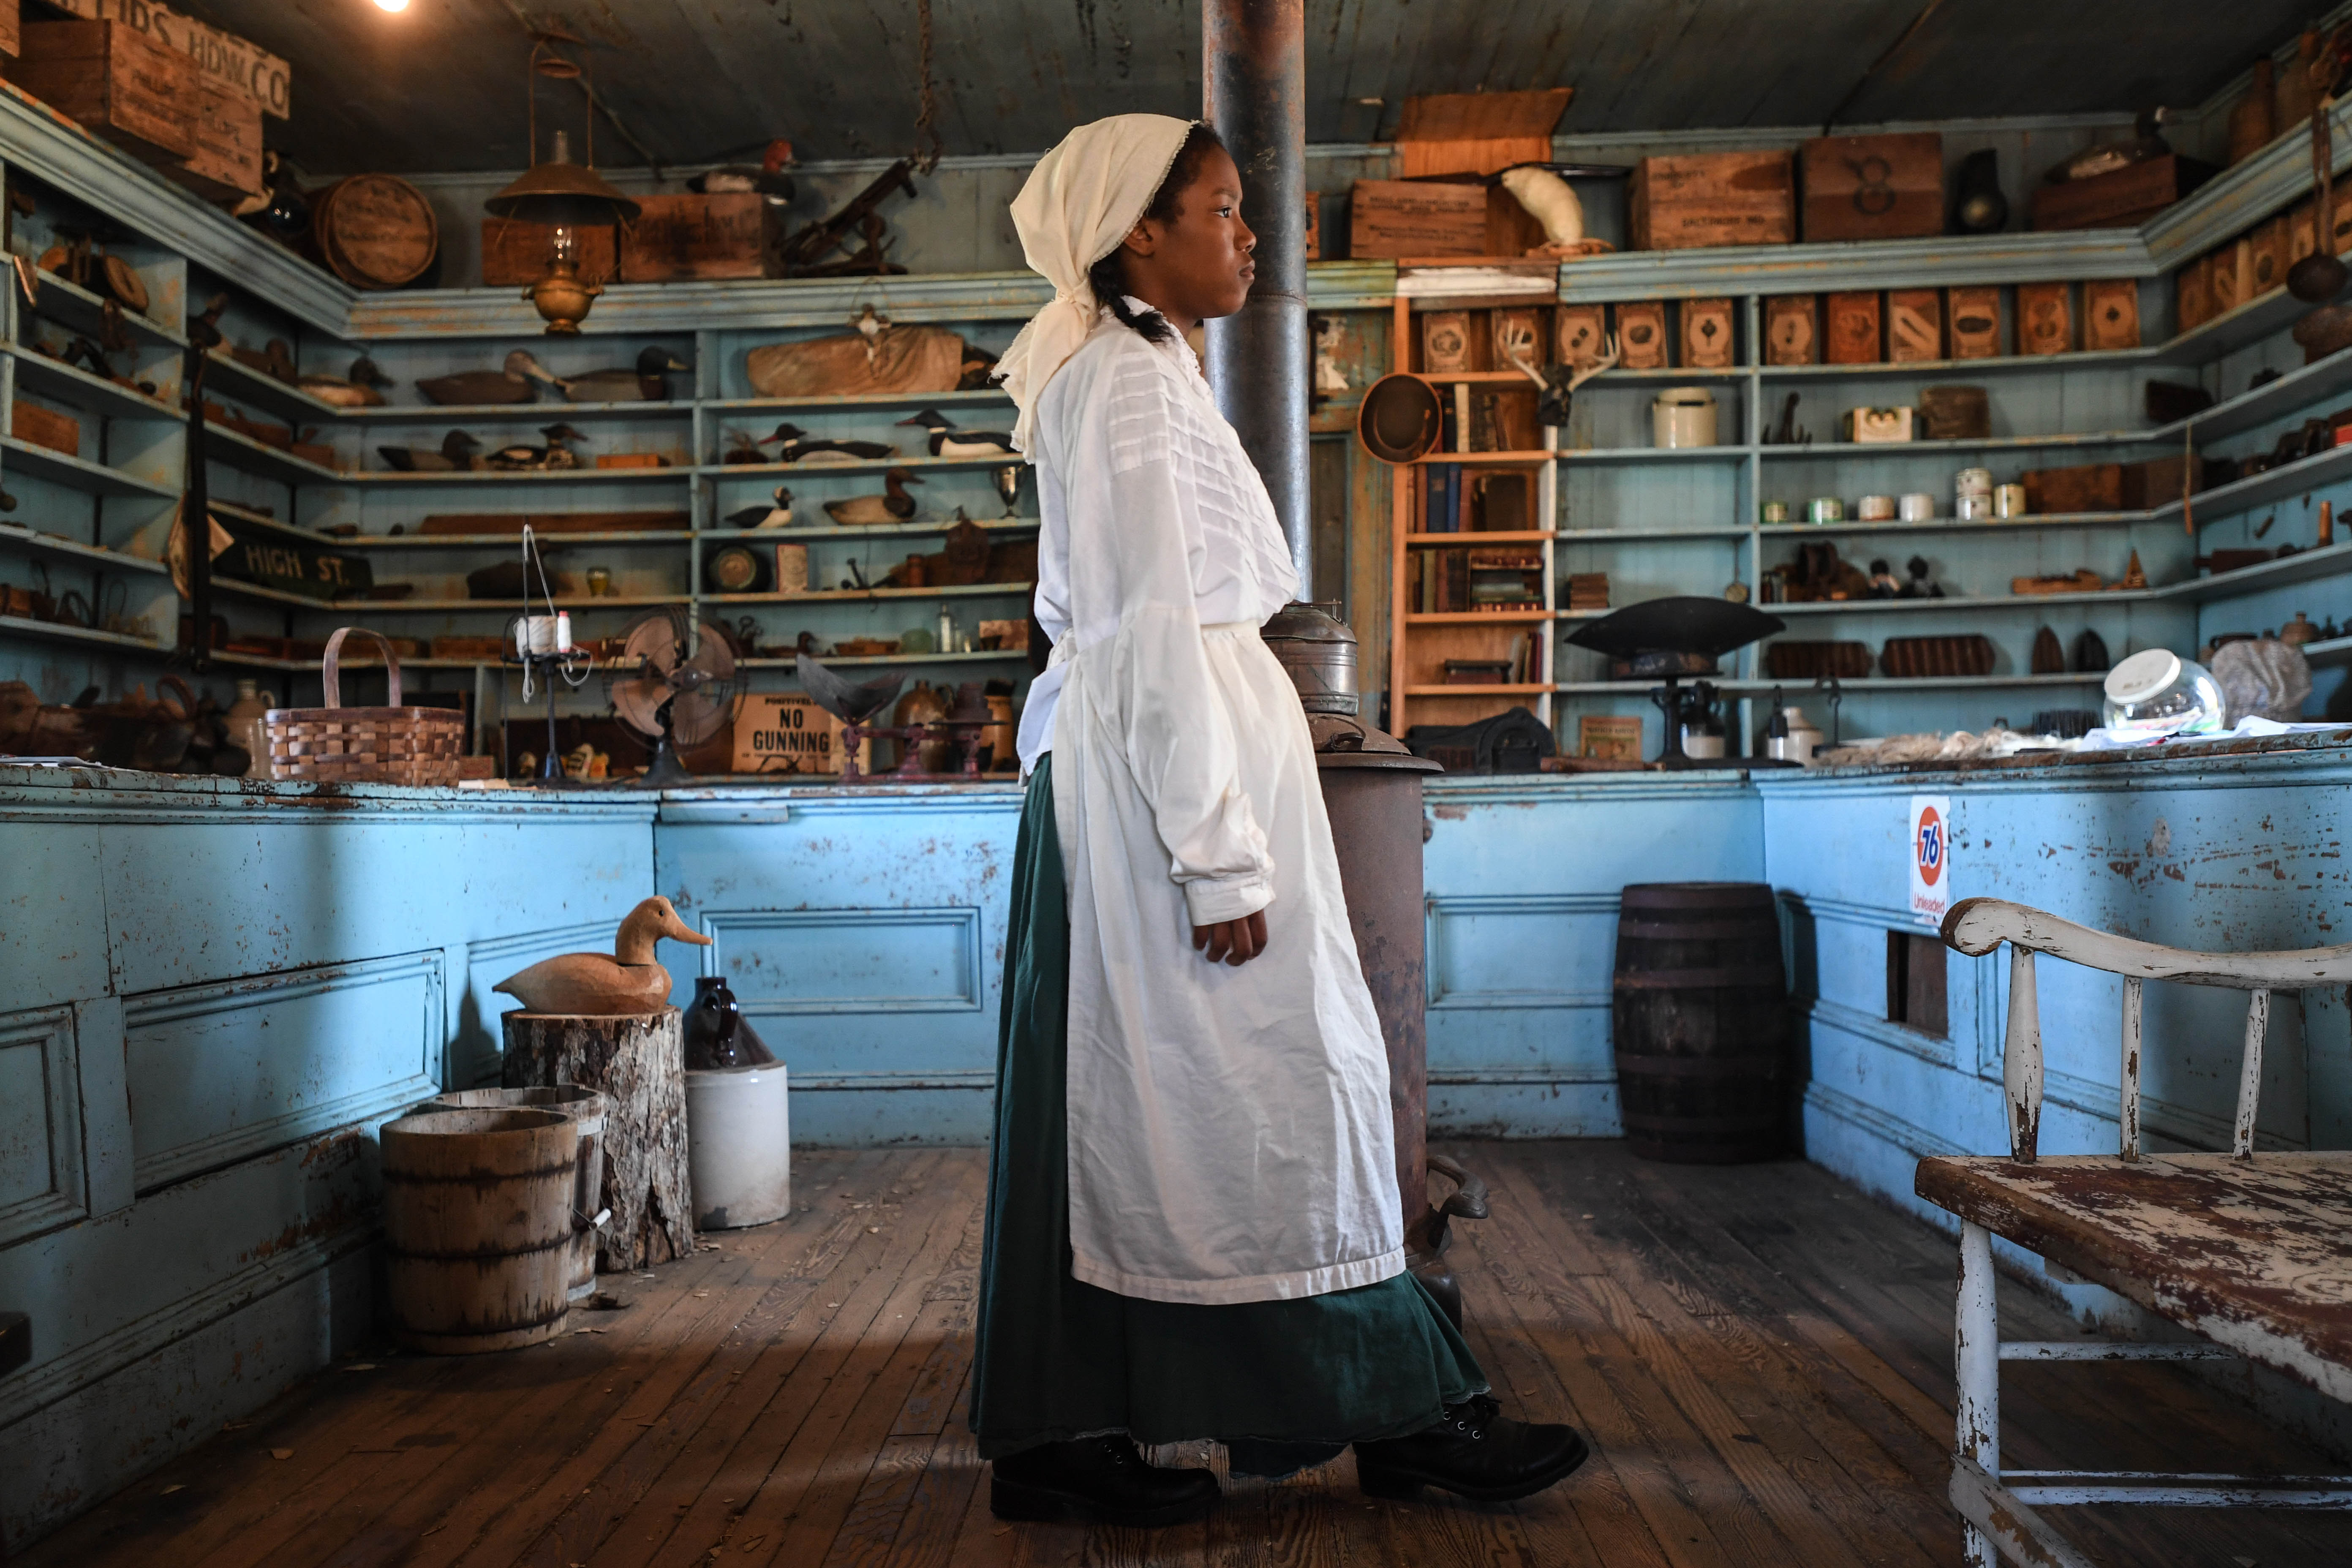 Harriet Tubman, suffered a traumatic brain injury in the local dry-goods store as a child. Now called Bucktown General Store, and still standing today in Cambridge, Maryland, Sydney Rushing, portrays Tubman.